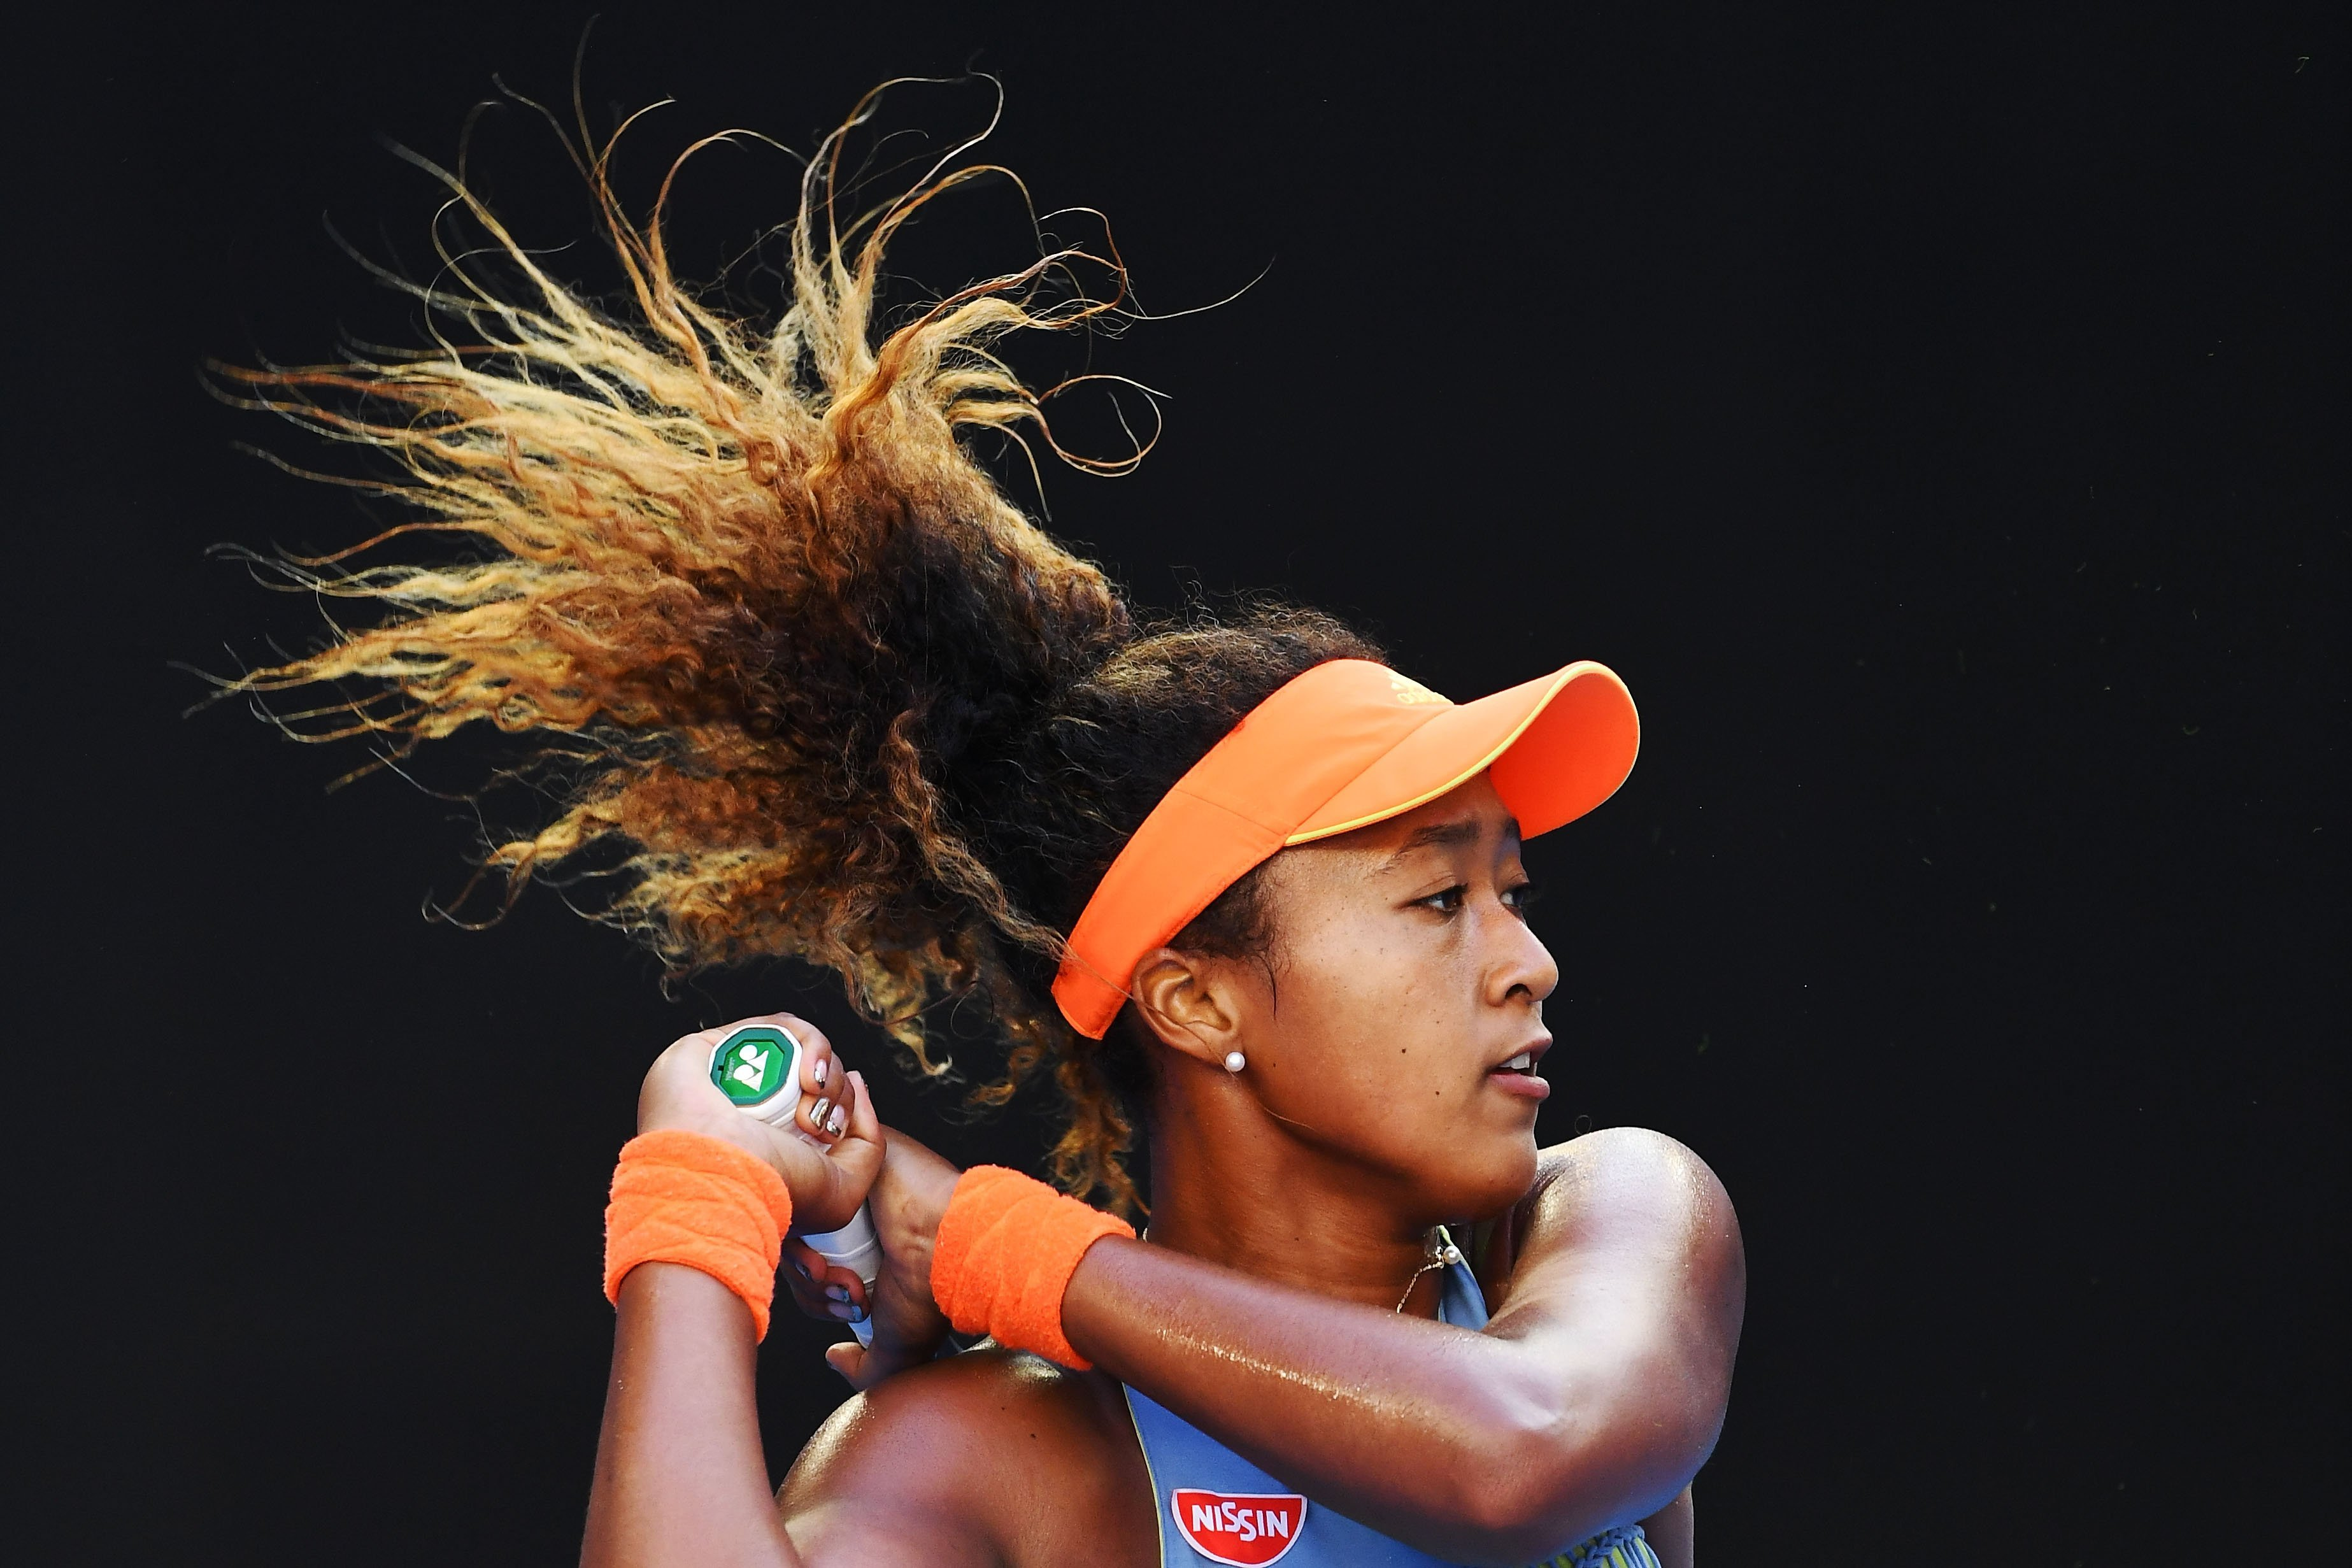 Tennis stars hoping to bring relief to Bahamas after Hurricane Dorian